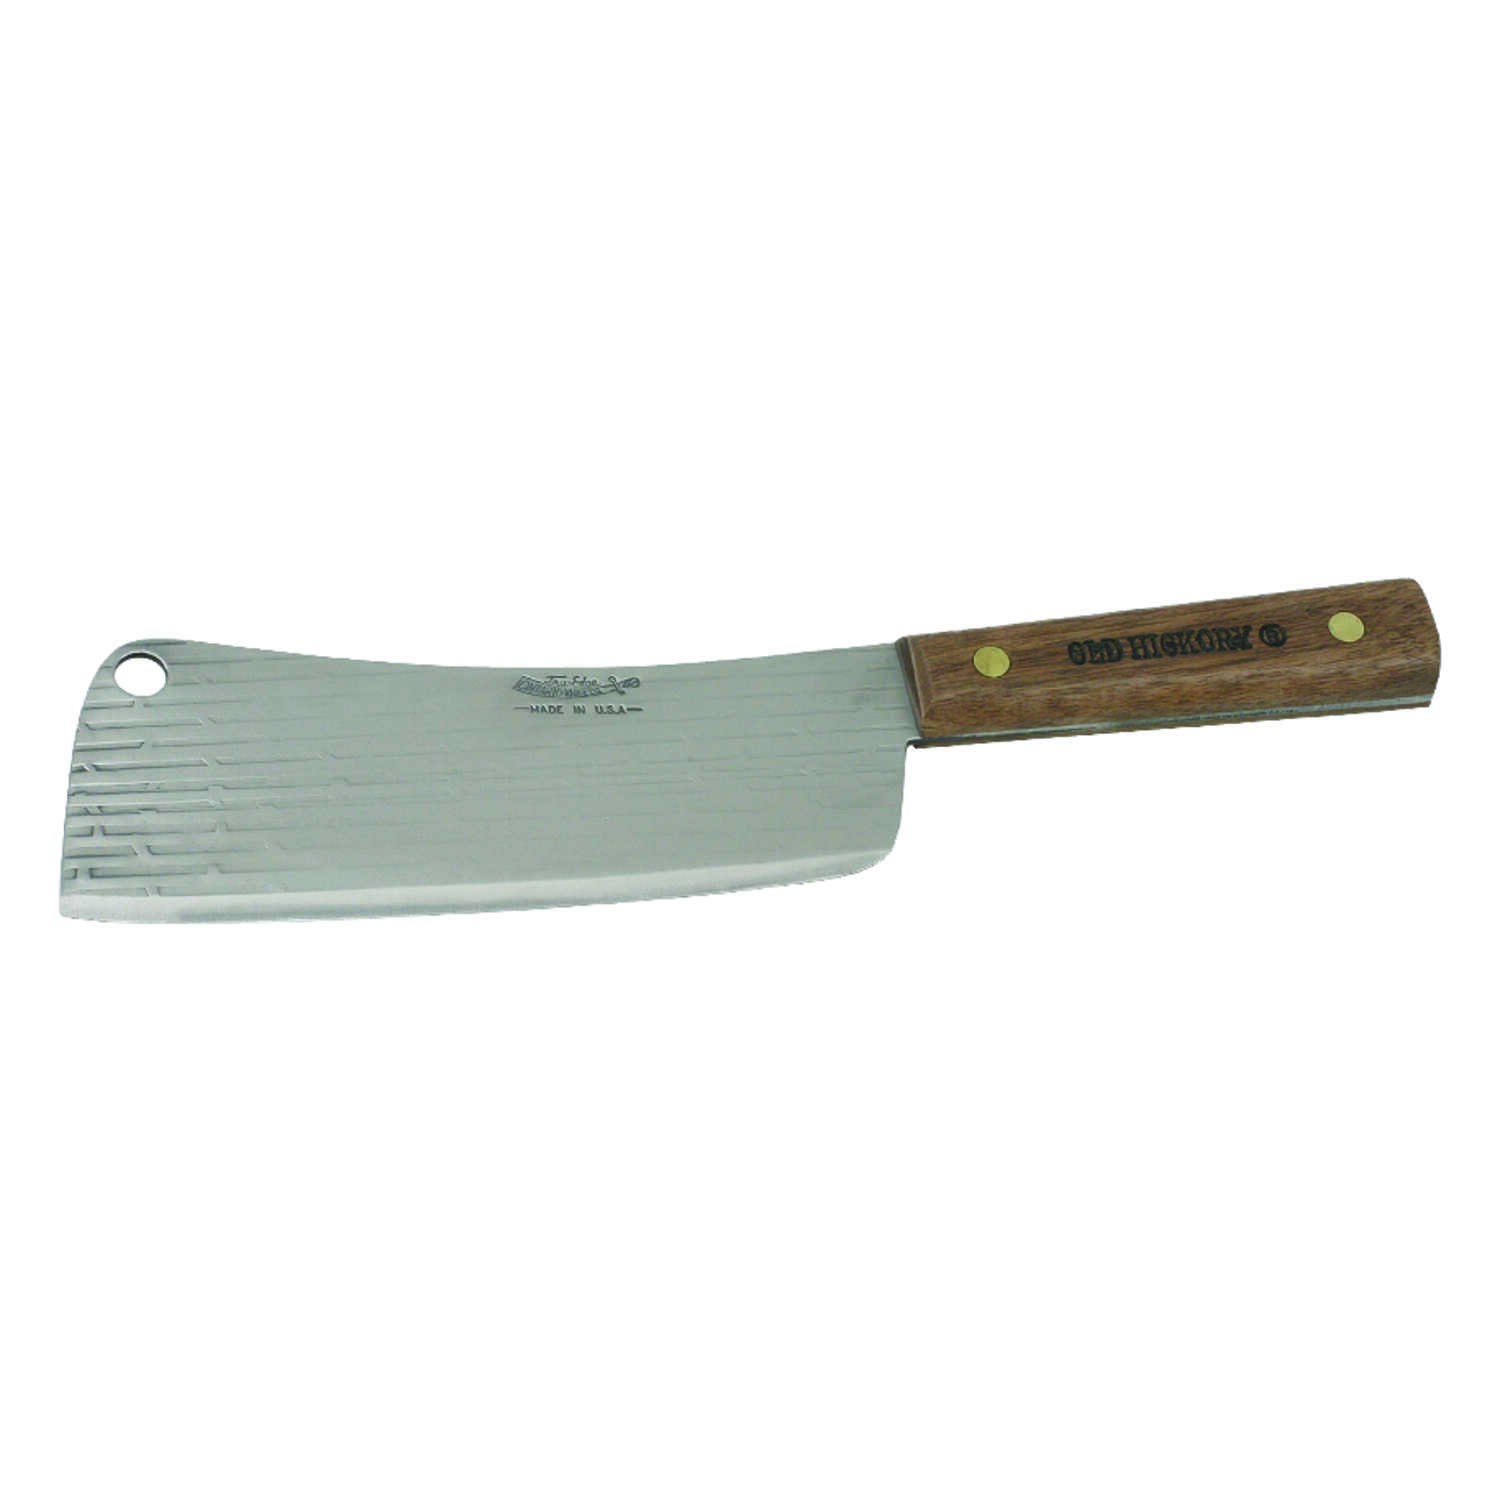 Ontario Knife  7 in. L Carbon Steel  Cleaver  1 pc.